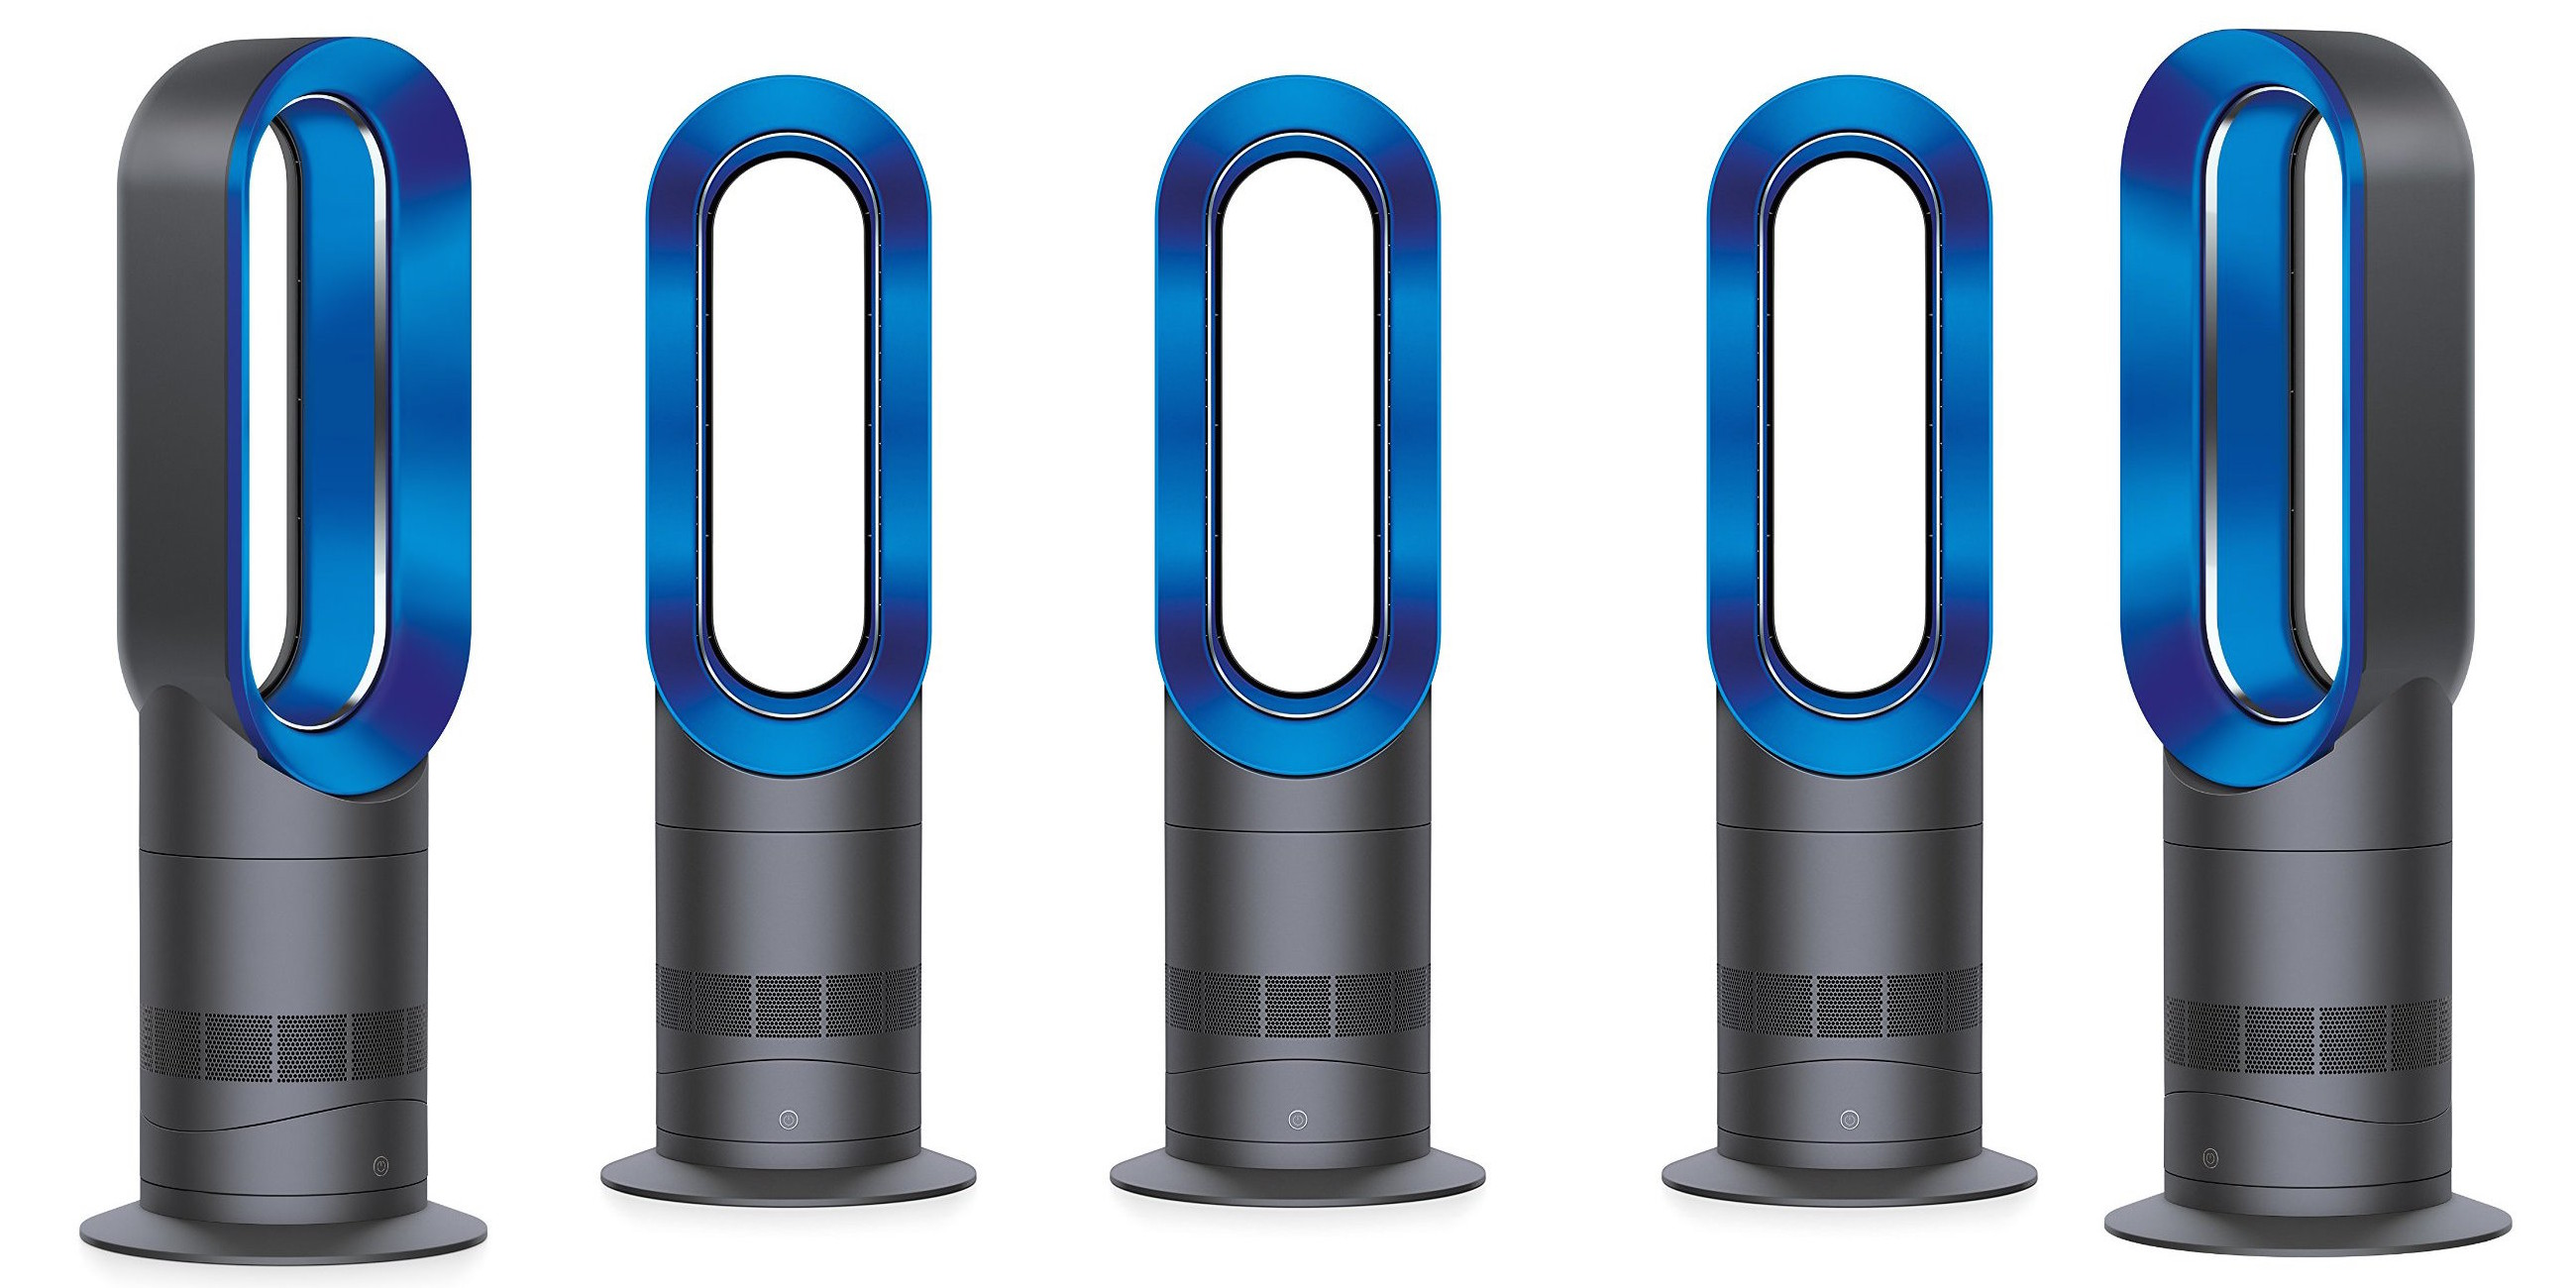 Dyson Am09 Dyson Am09 Hot Cool Fan Refurb For 280 Off 170 Shipped Orig